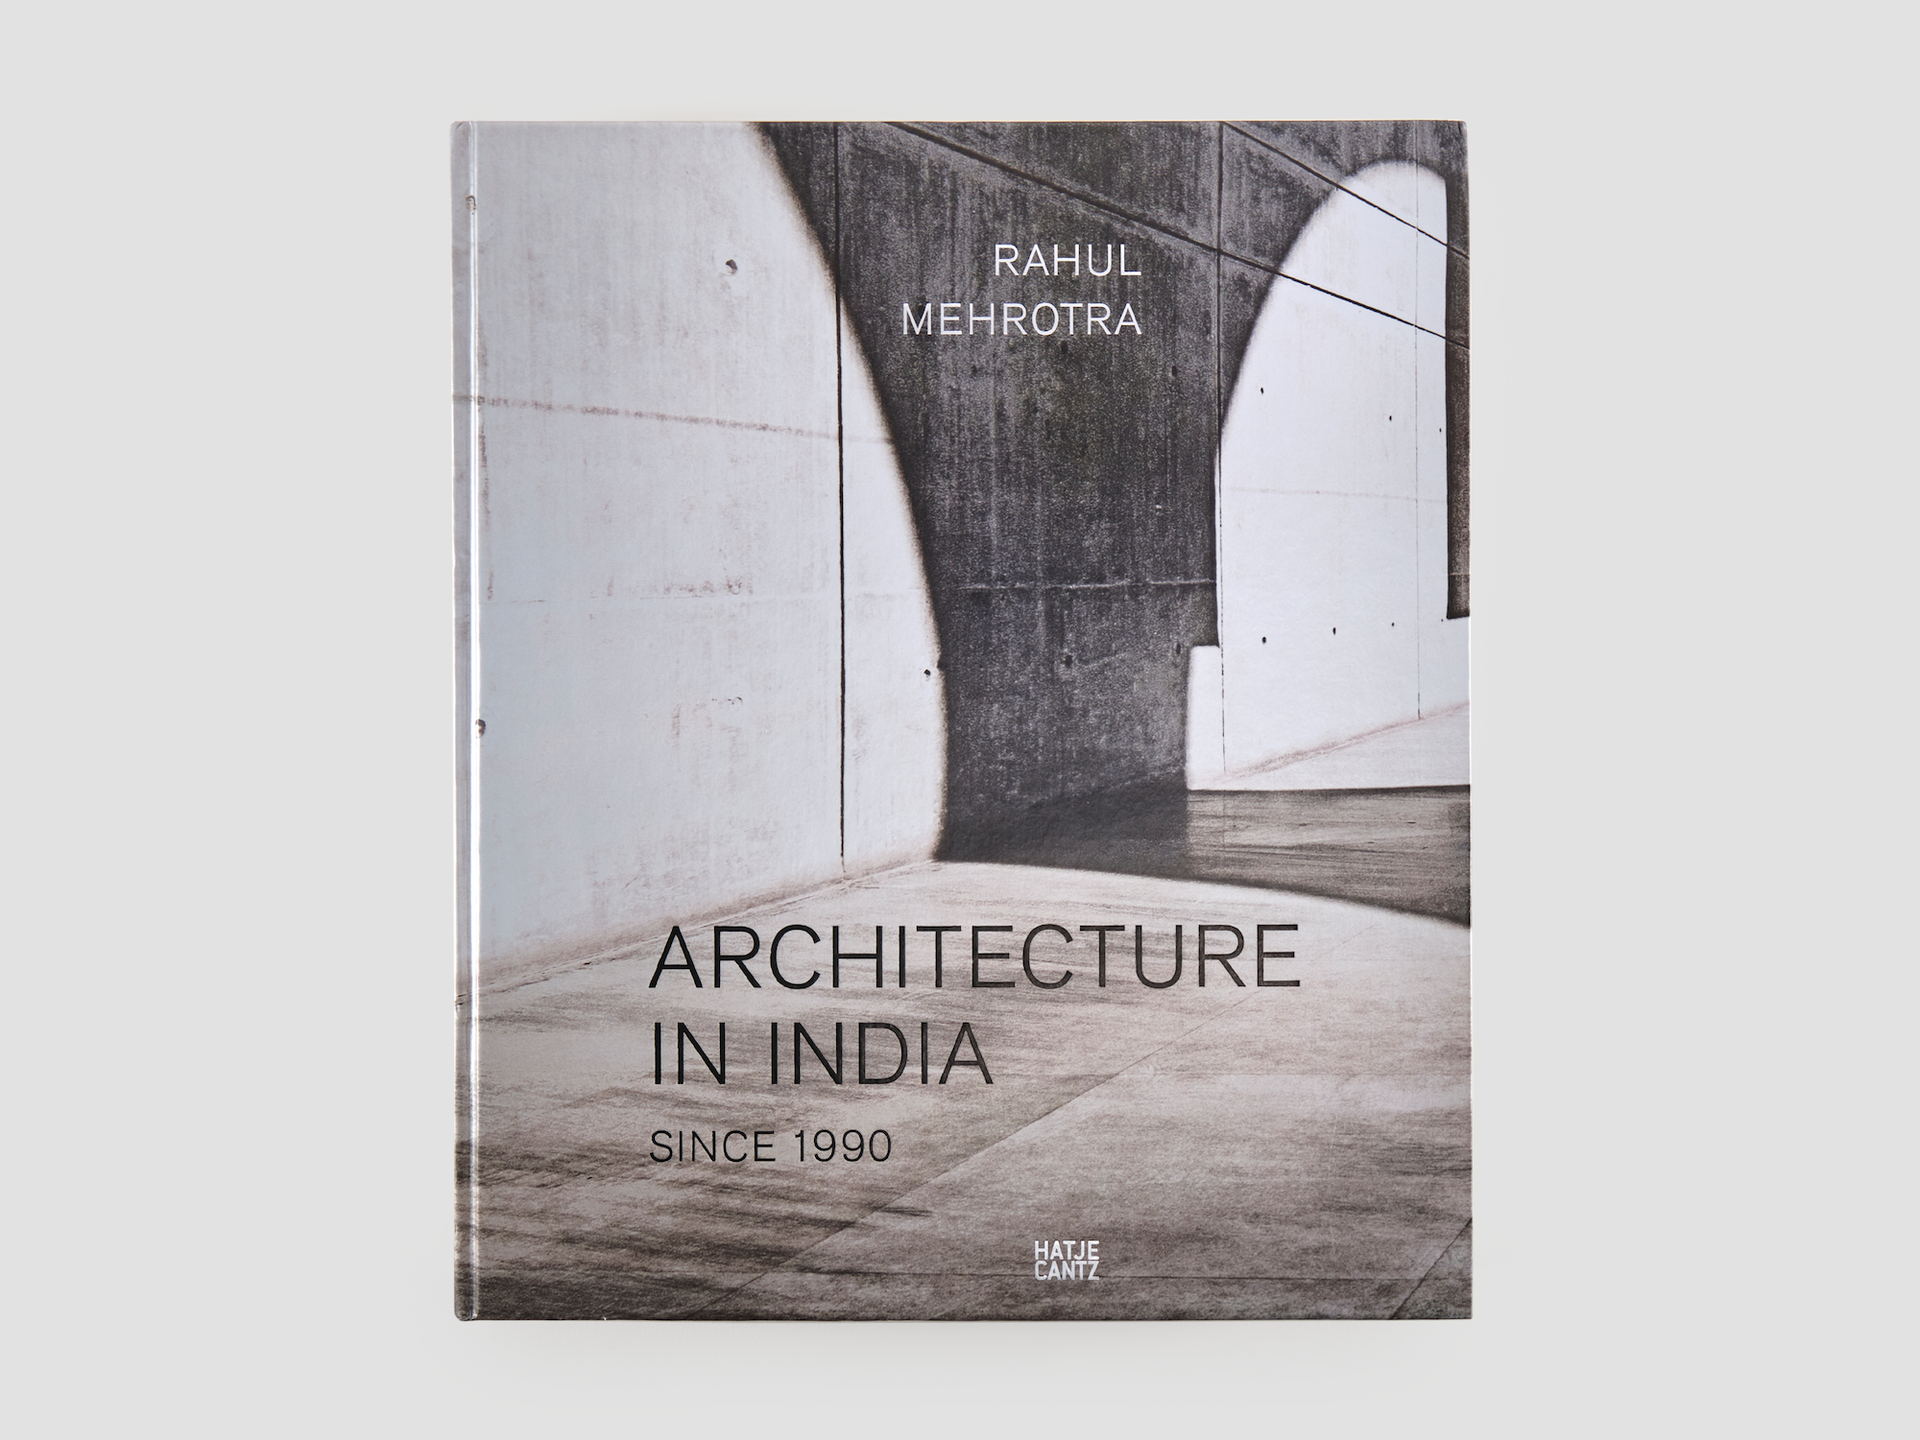 Architecture in India: Since 1990